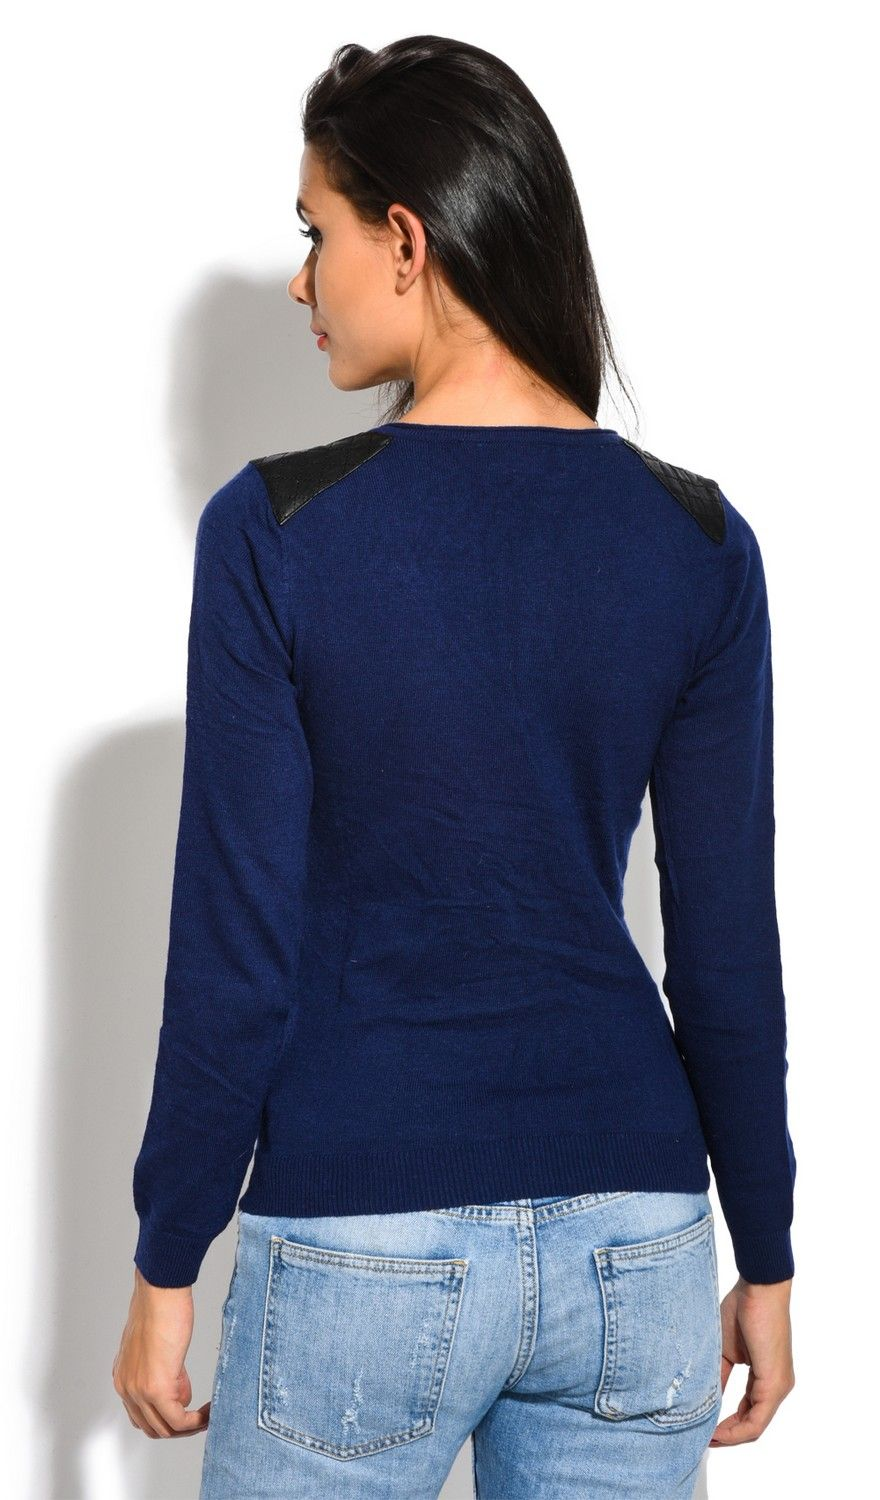 Assuili V-Neck Long Sleeve Zip + Suede Shoulder Sweater in Navy